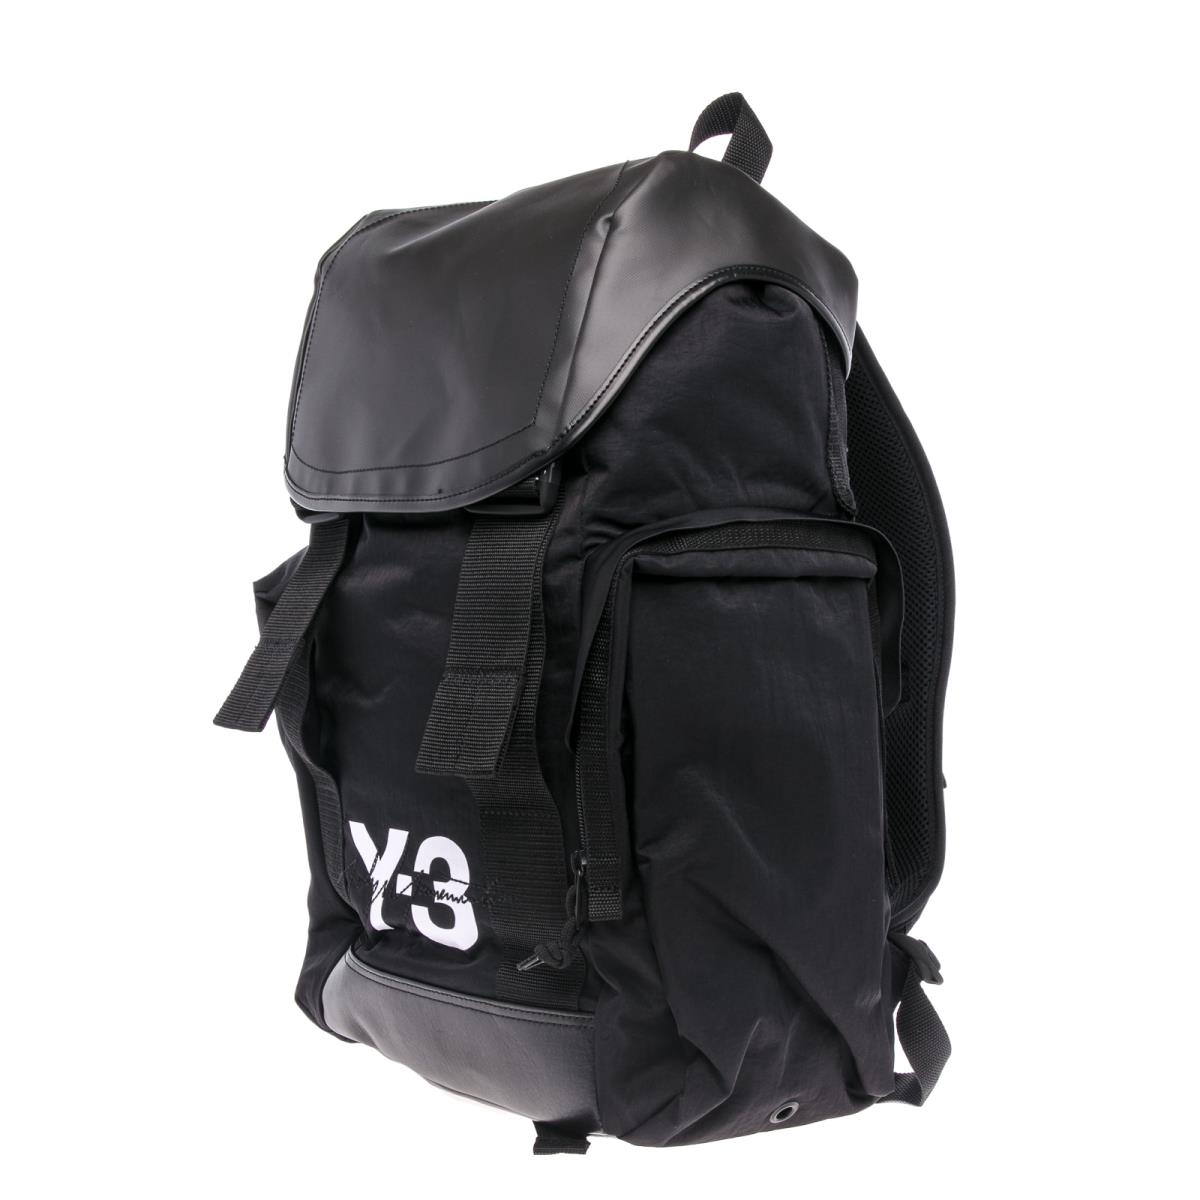 556d668caa1f ADIDAS Y-3 Backpack MOBILITY for Men